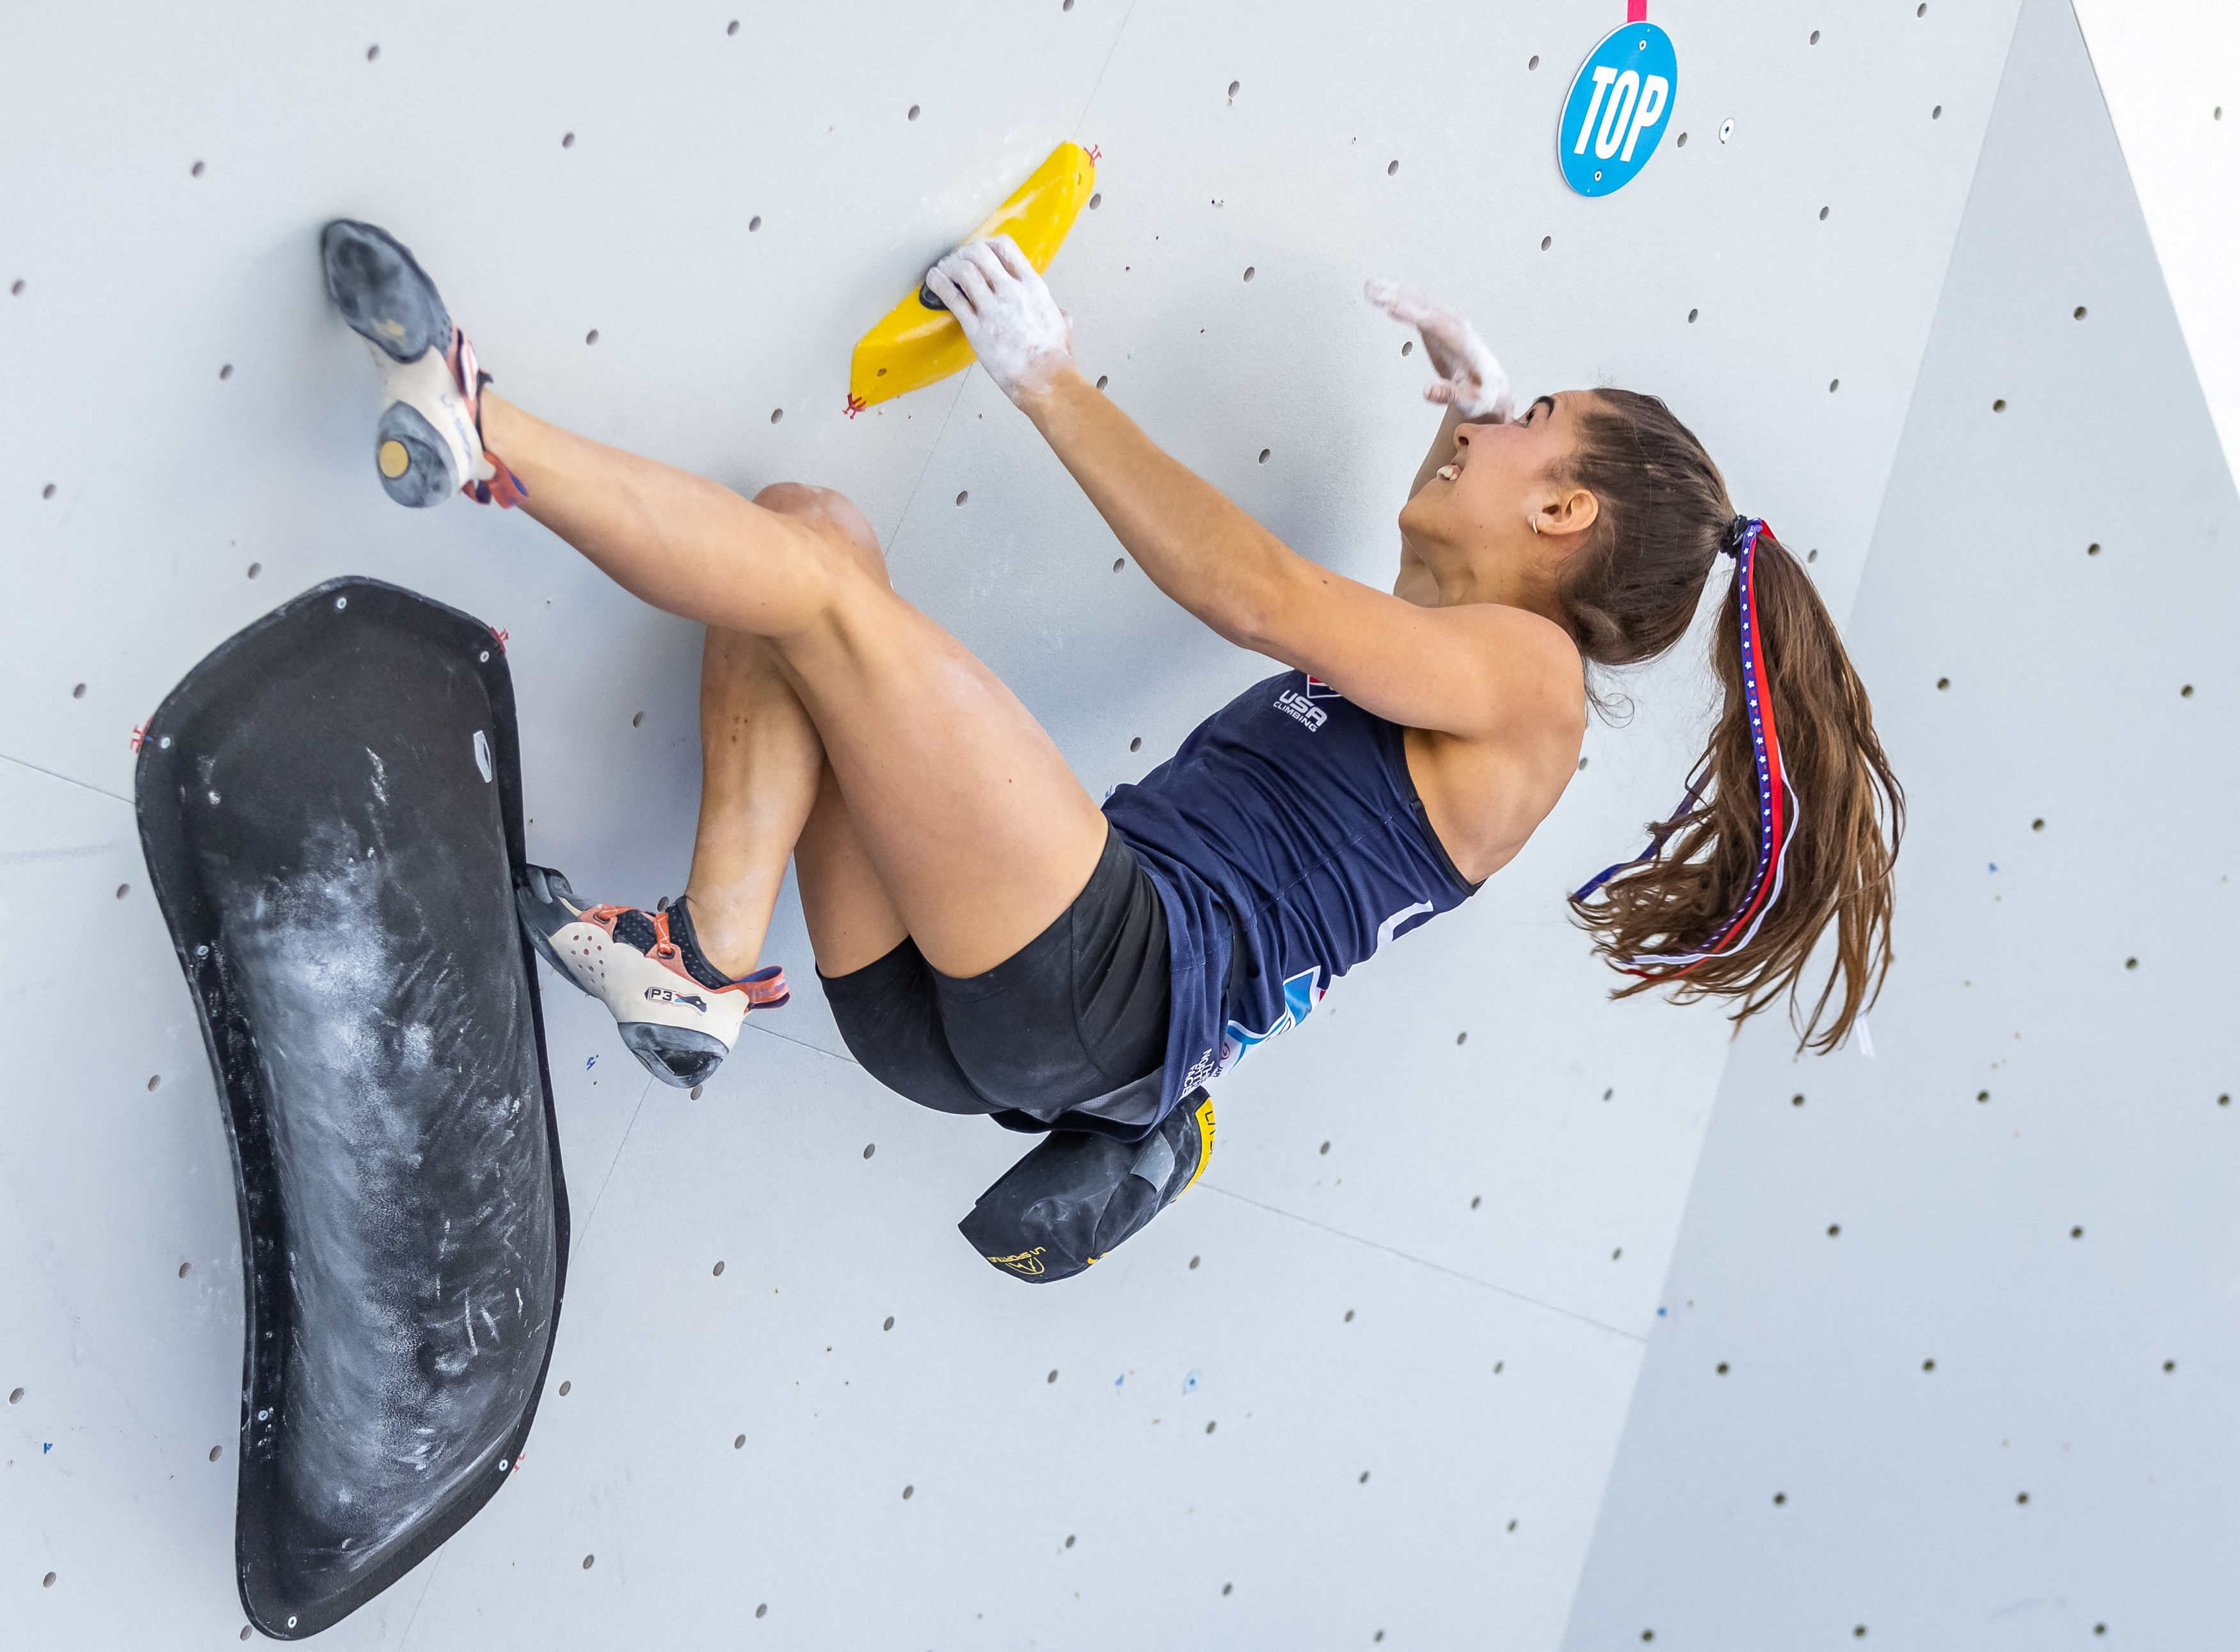 Brooke Raboutou at the Climbing World Cup in June.